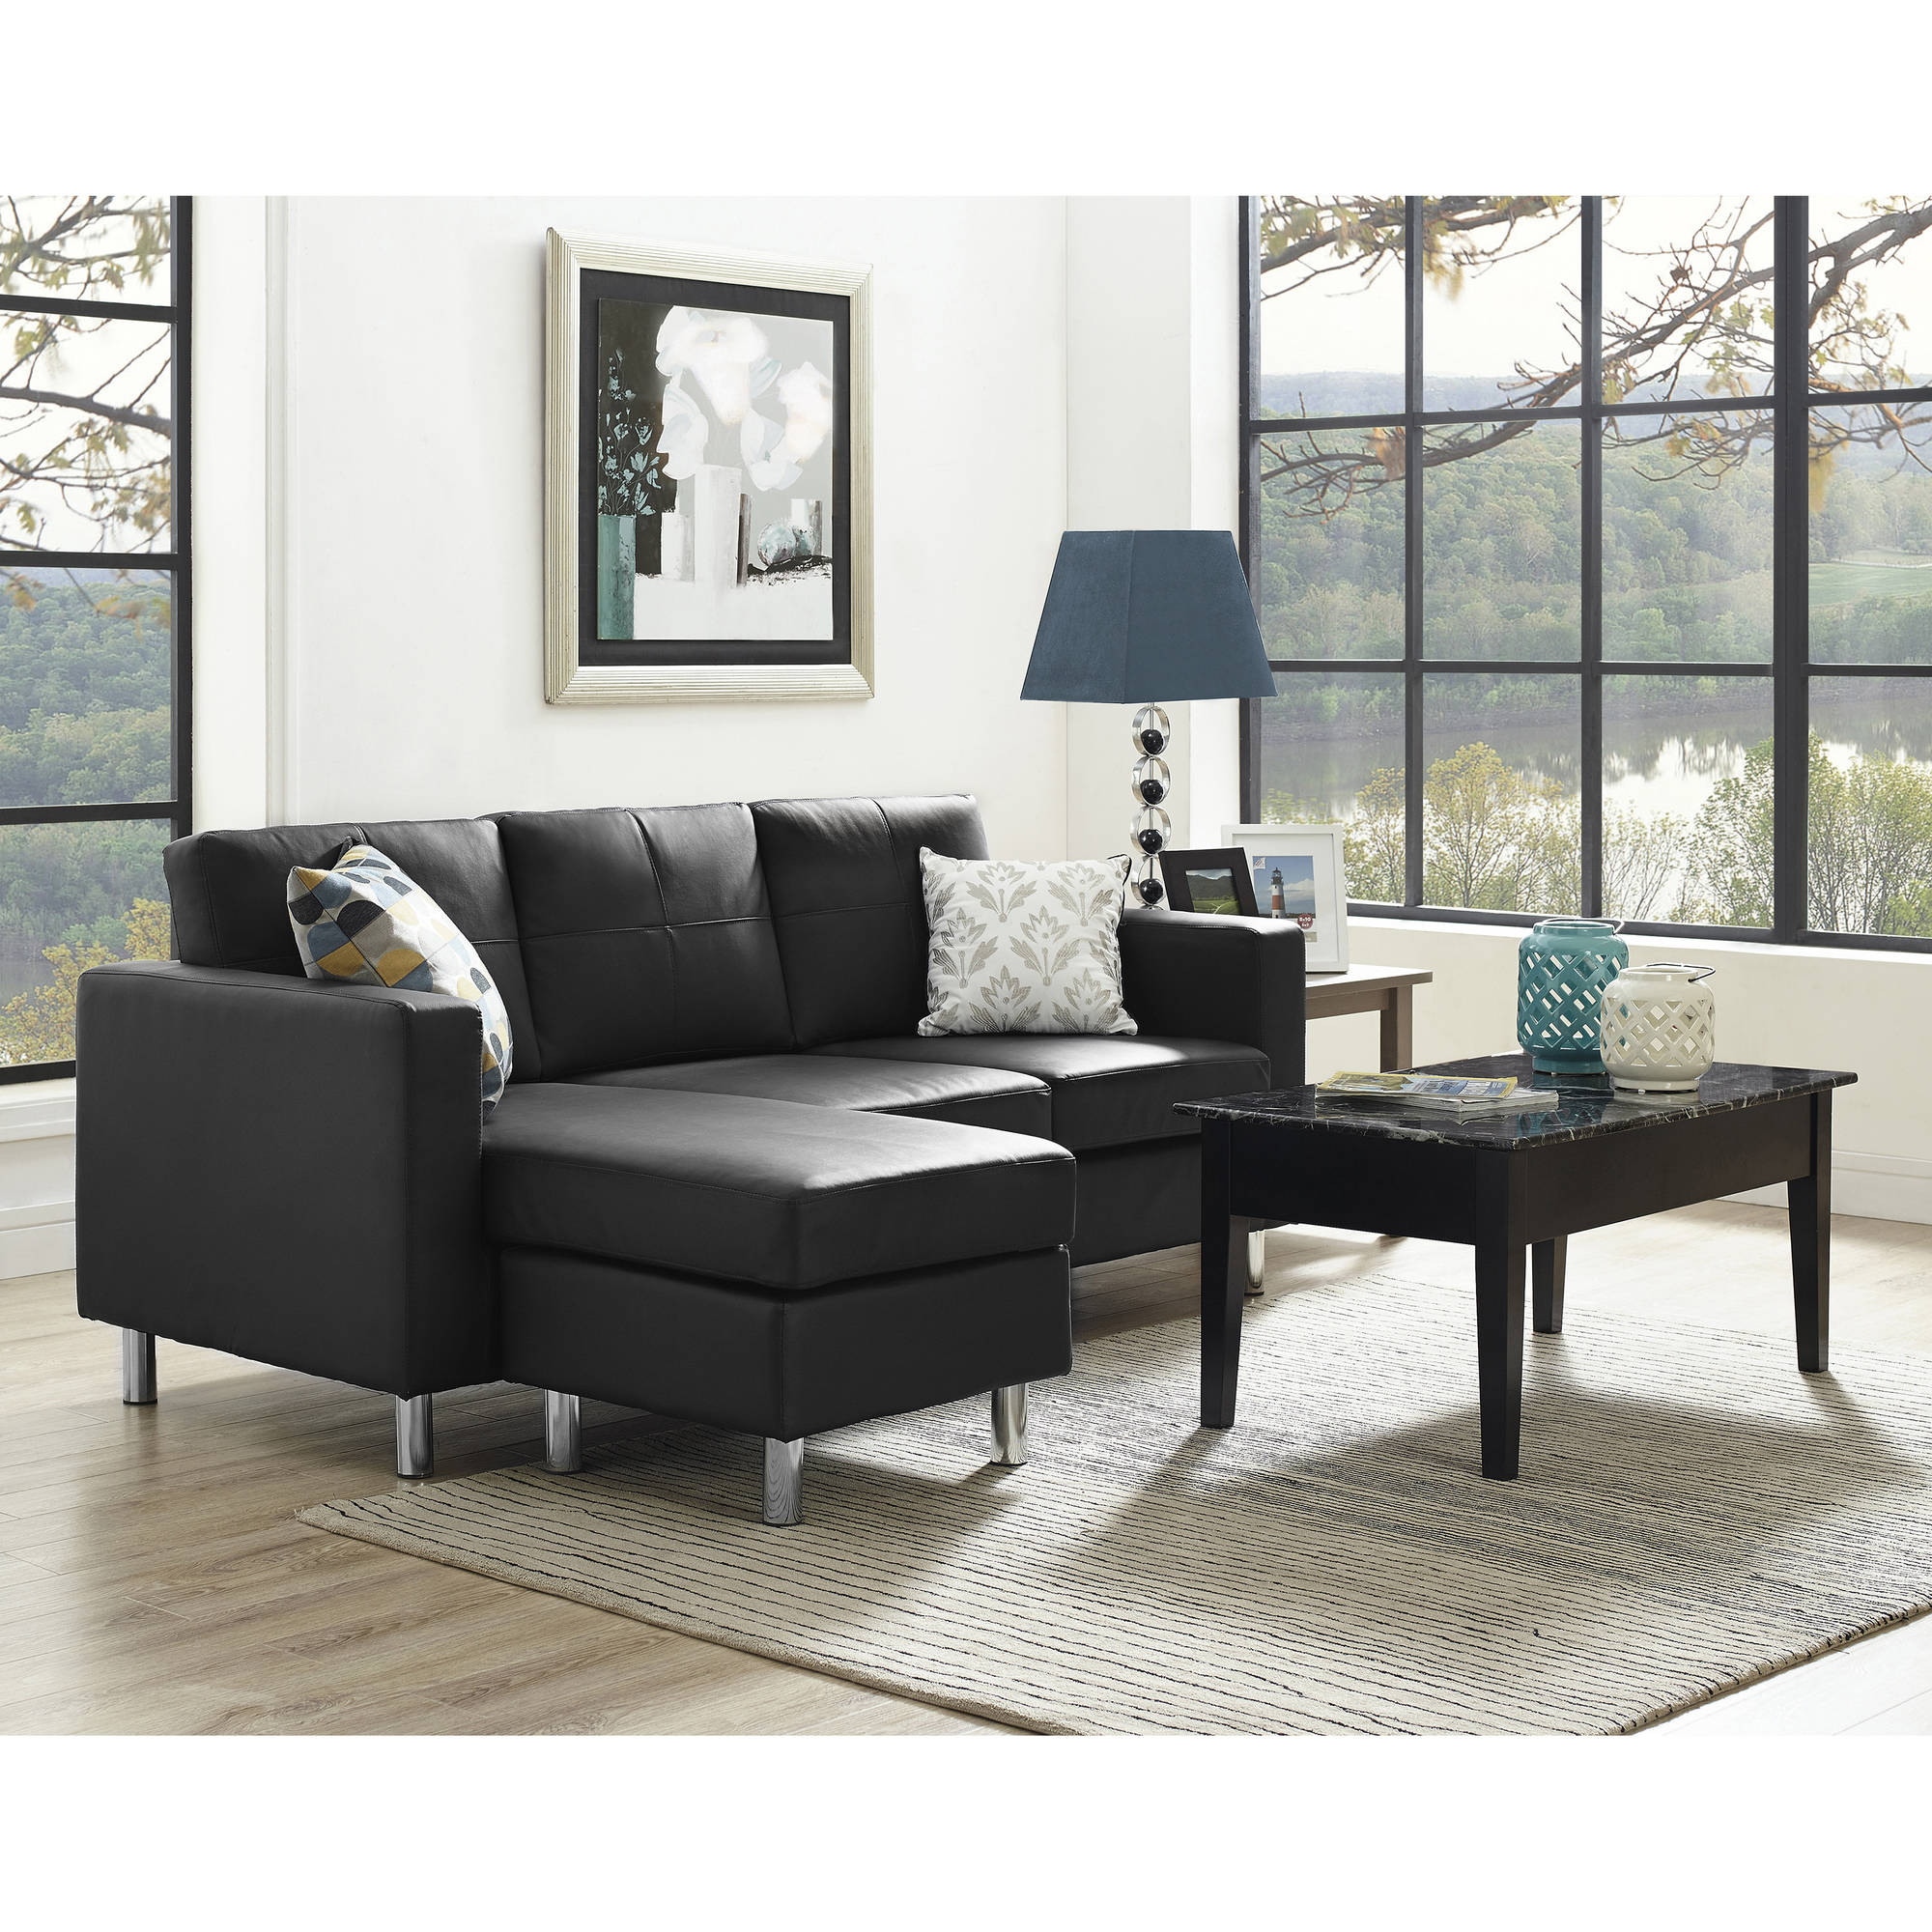 Small Spaces Living Room Value Bundle Walmart pertaining to Living Room Sets For Small Spaces